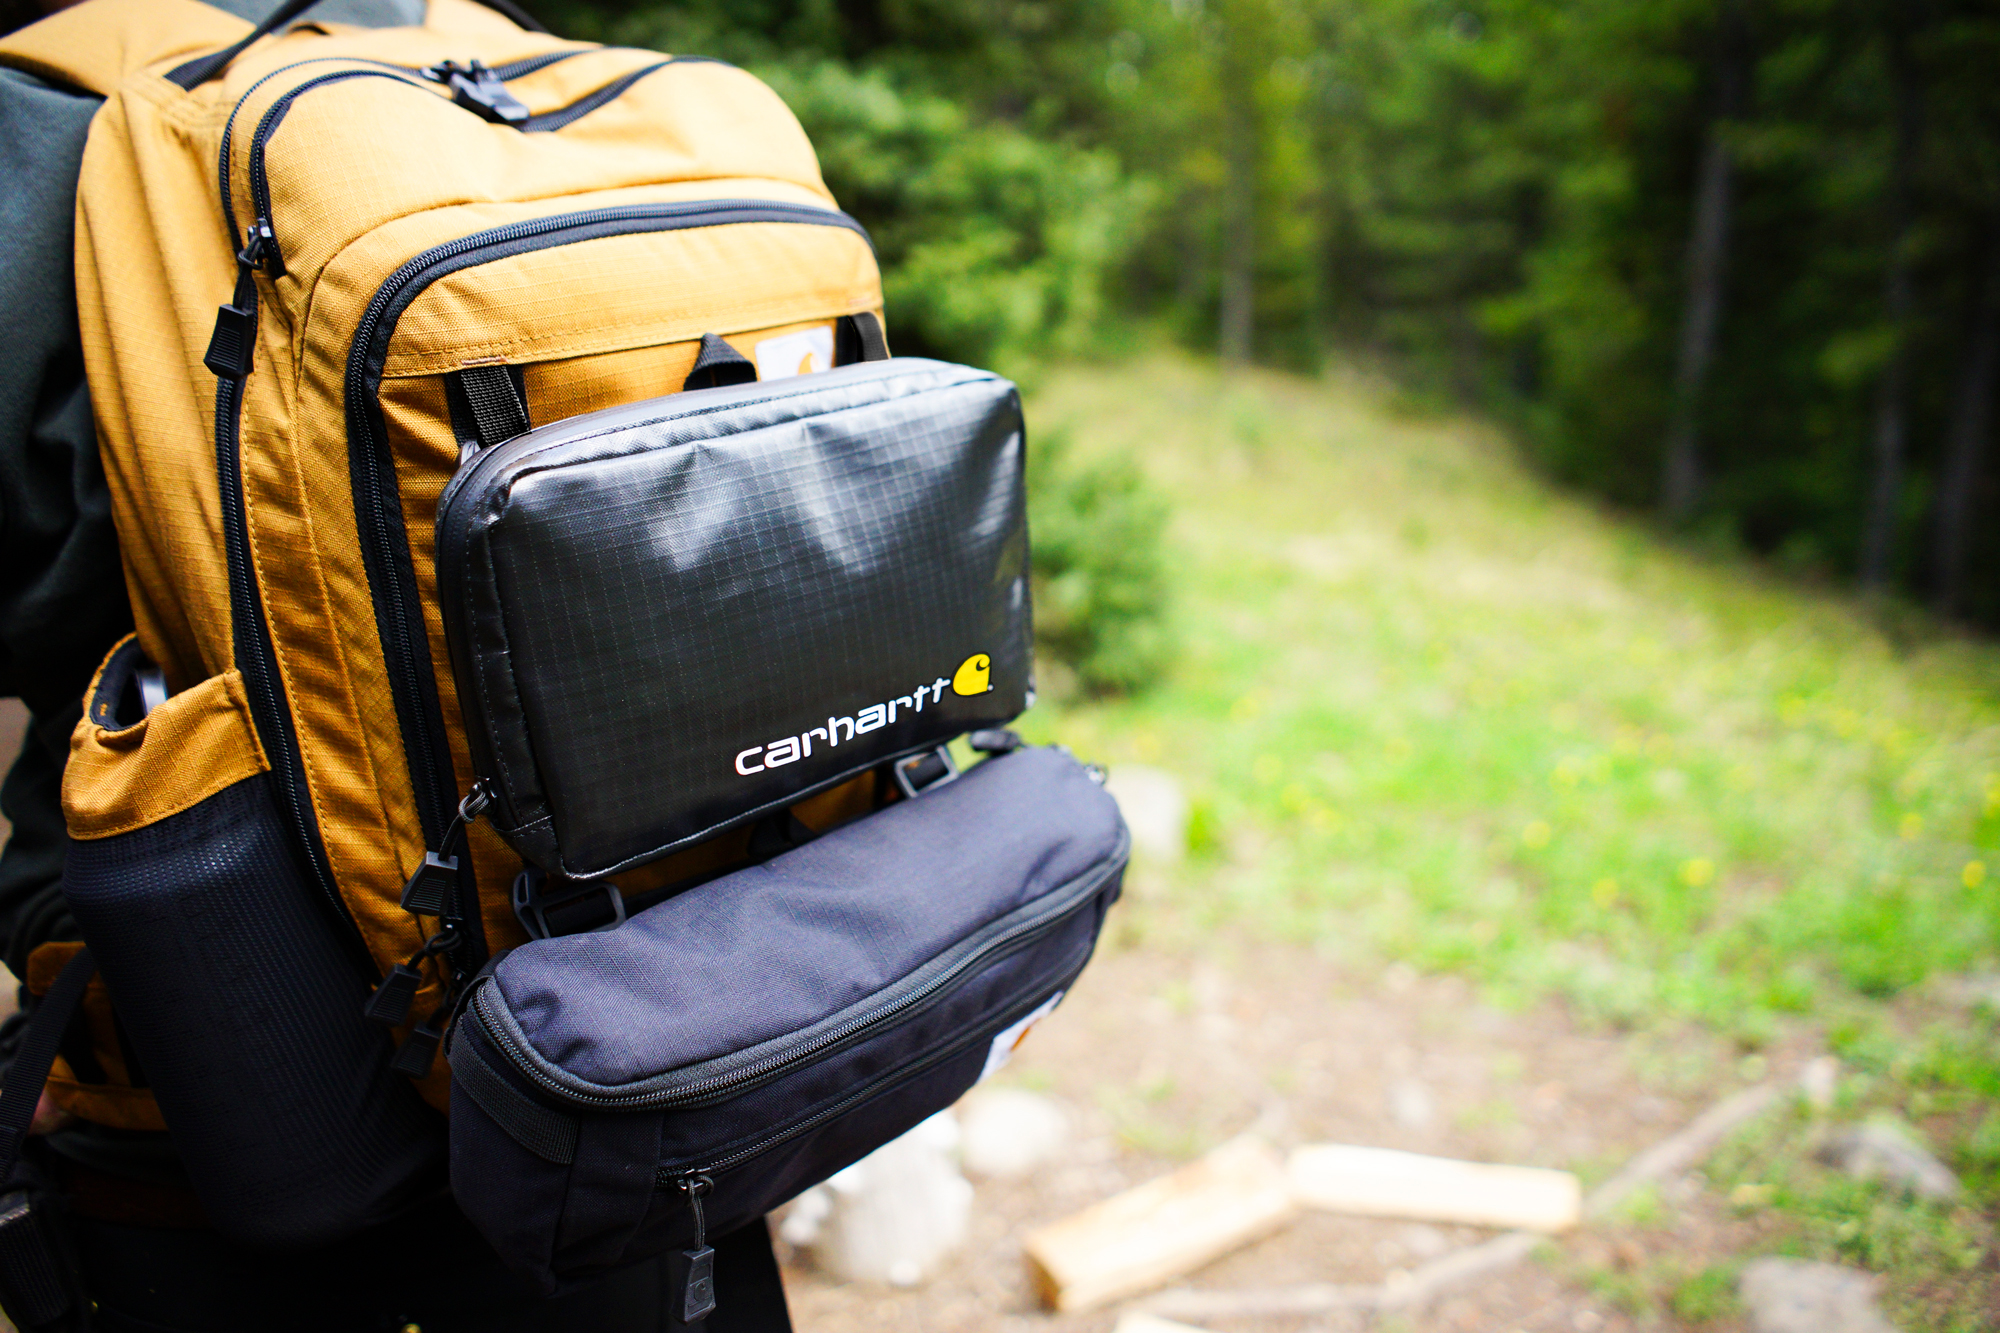 Carhartt Rugged Series Pack